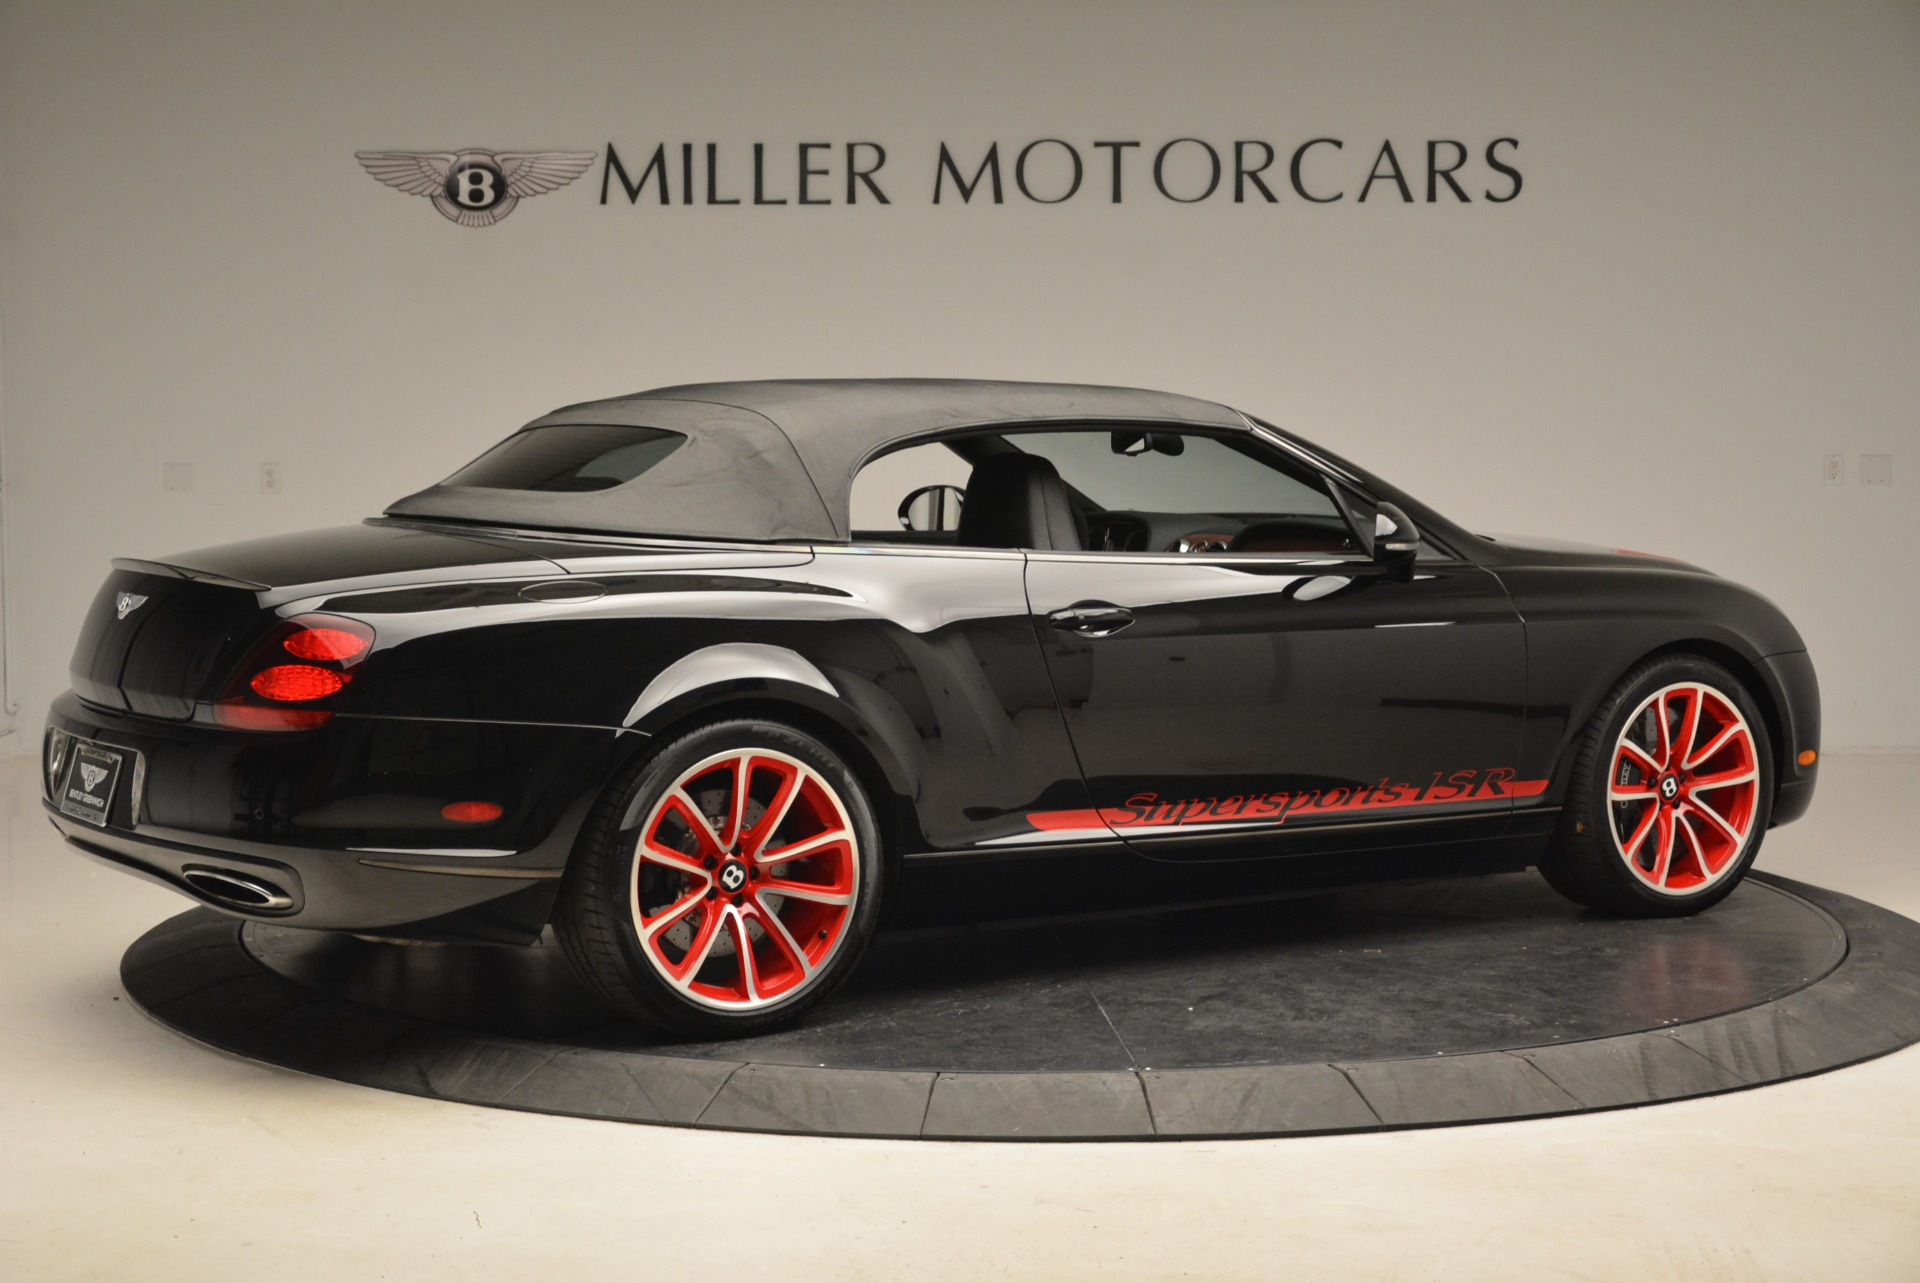 Used 2013 Bentley Continental GT Supersports Convertible ISR For Sale In Greenwich, CT. Alfa Romeo of Greenwich, 7340 2151_p21